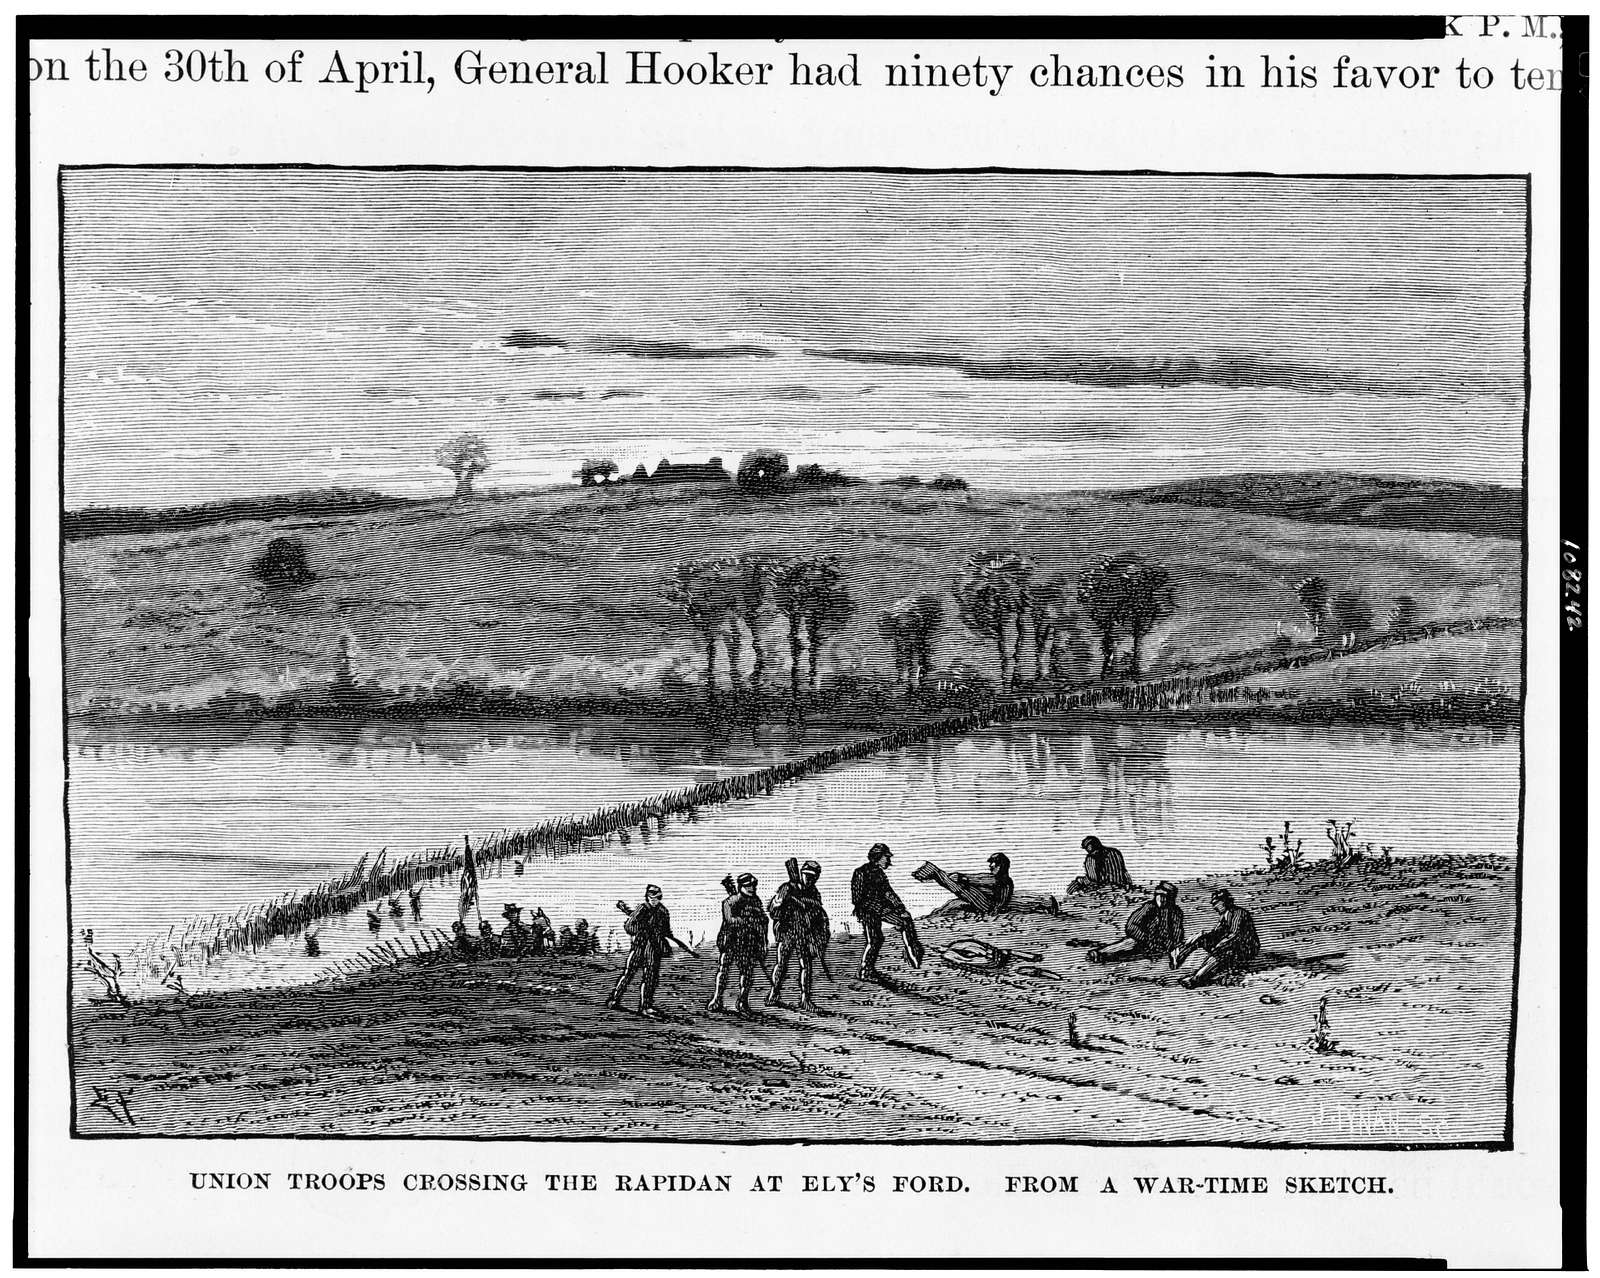 Union troops crossing the Rapidan at Ely's Ford / from a war-time sketch.